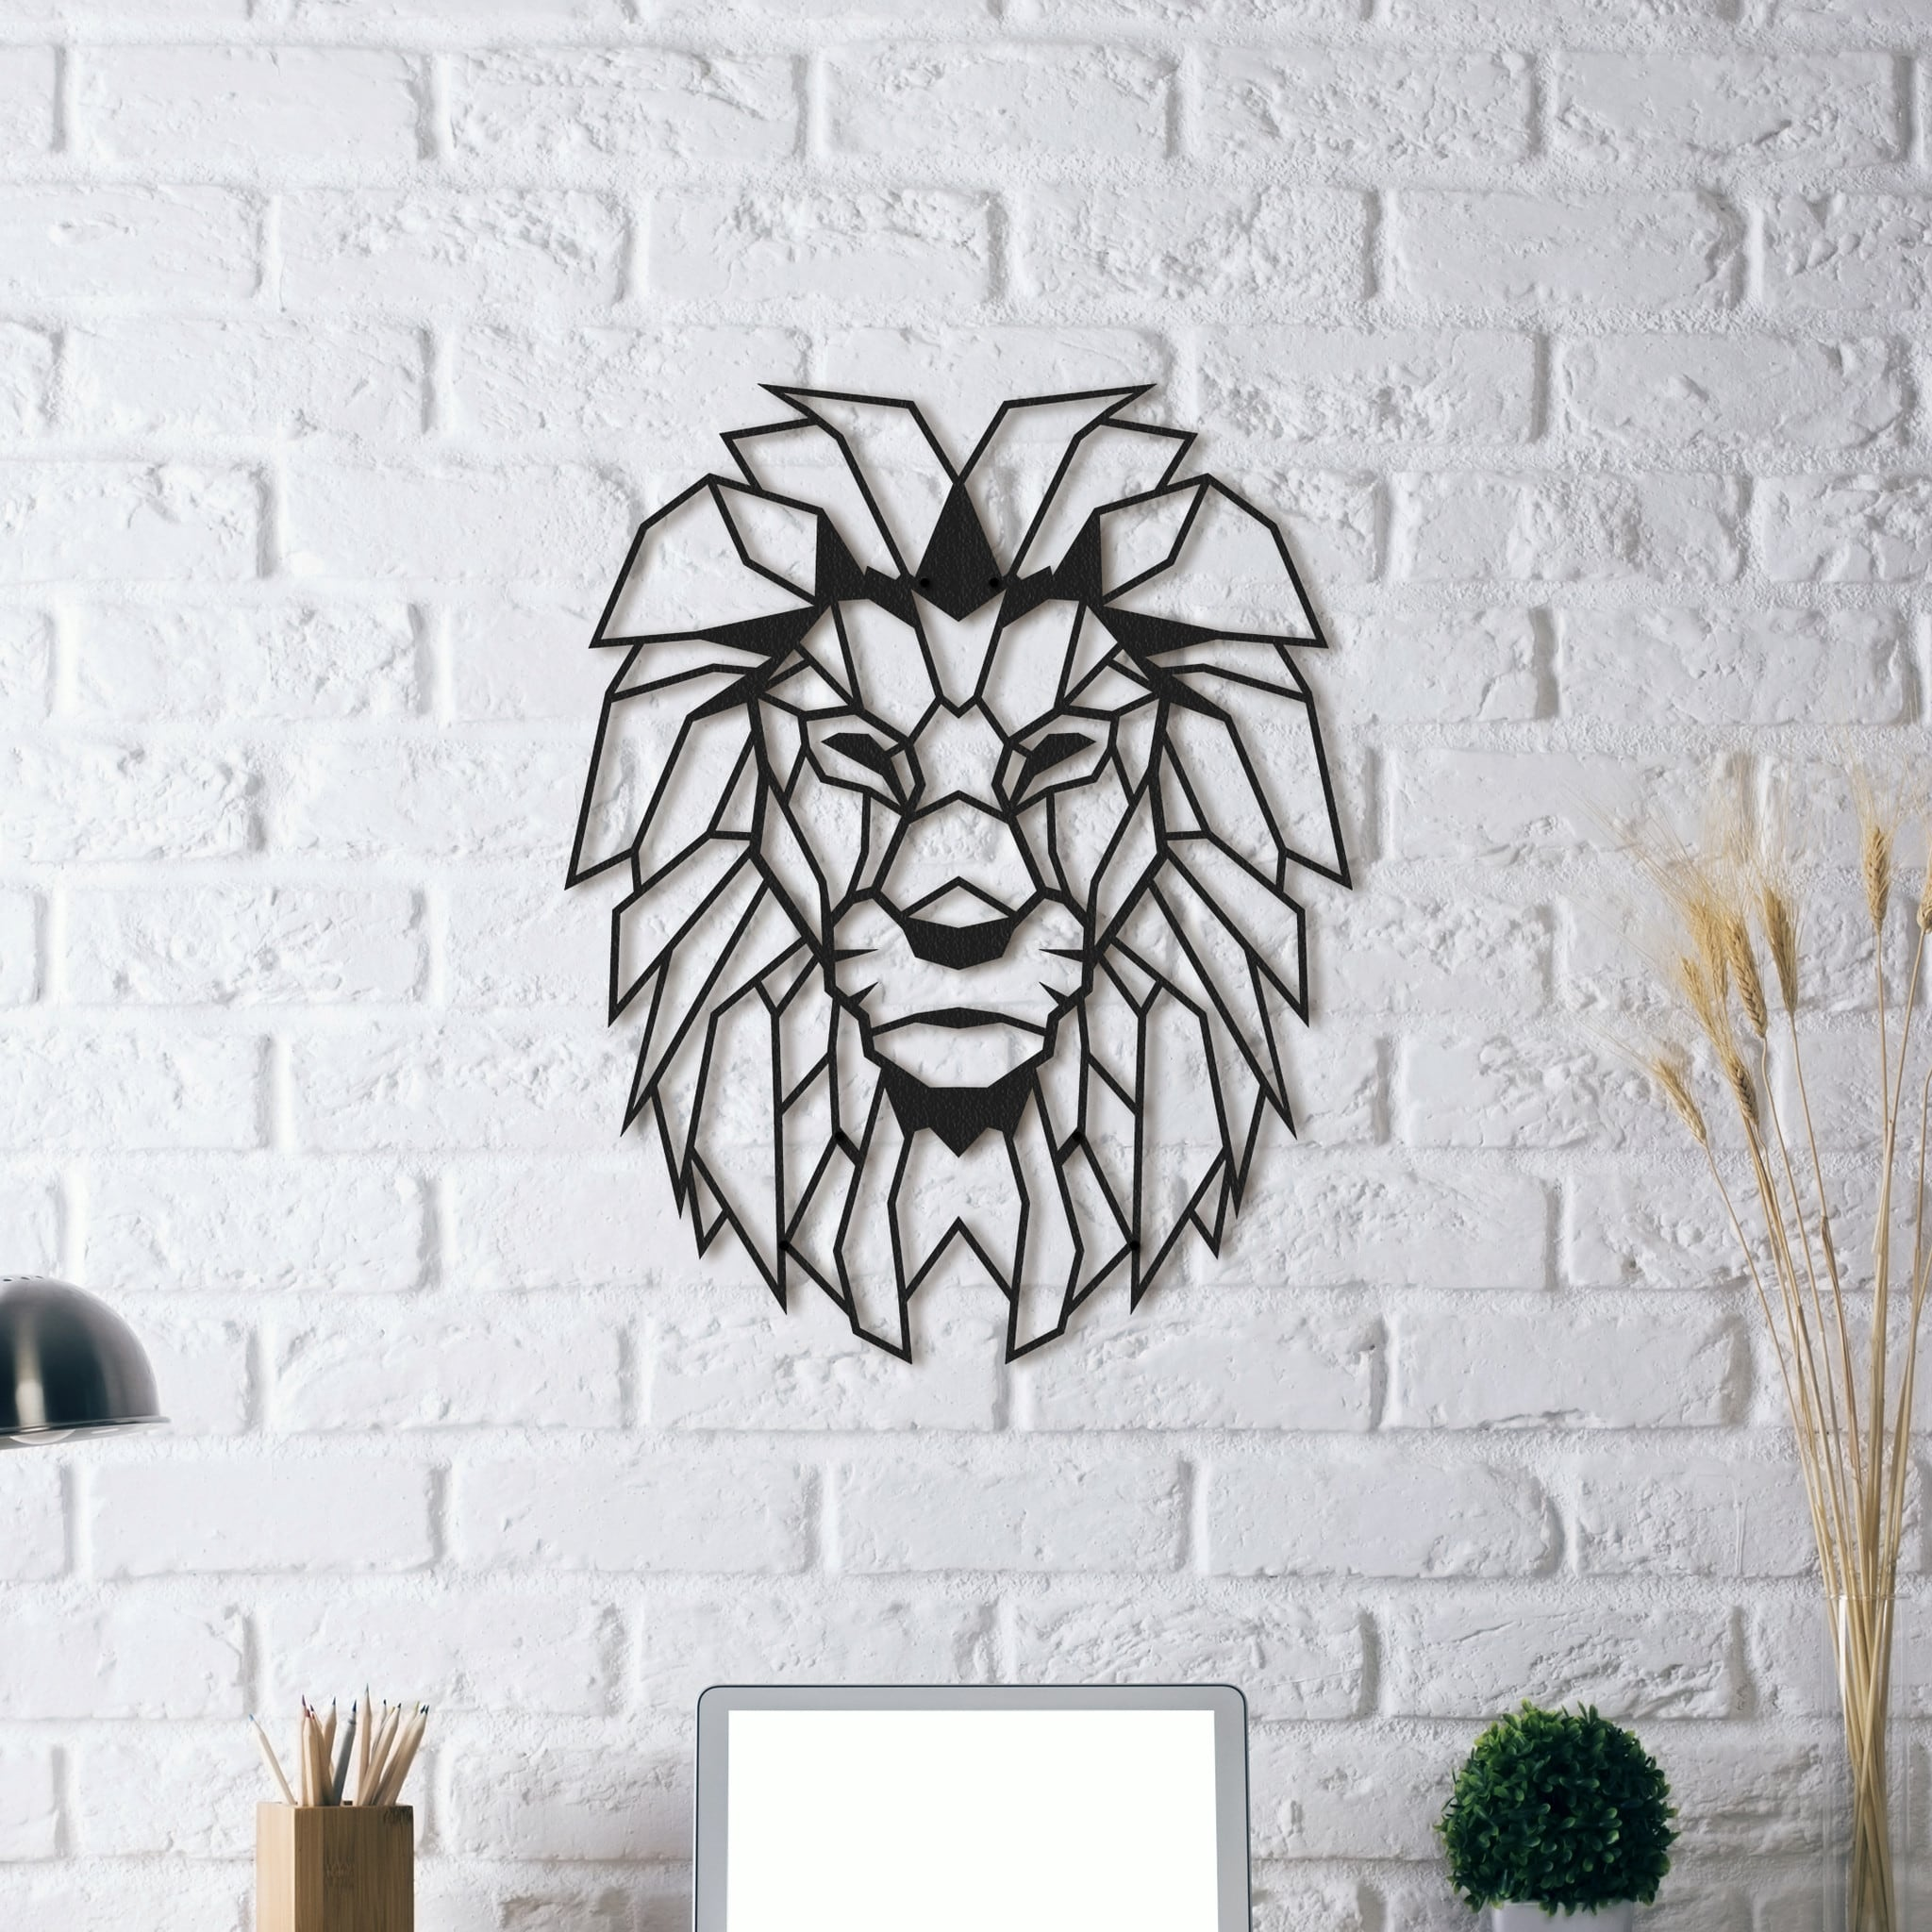 Wall metal decoration of a lion king to decorate your home with style